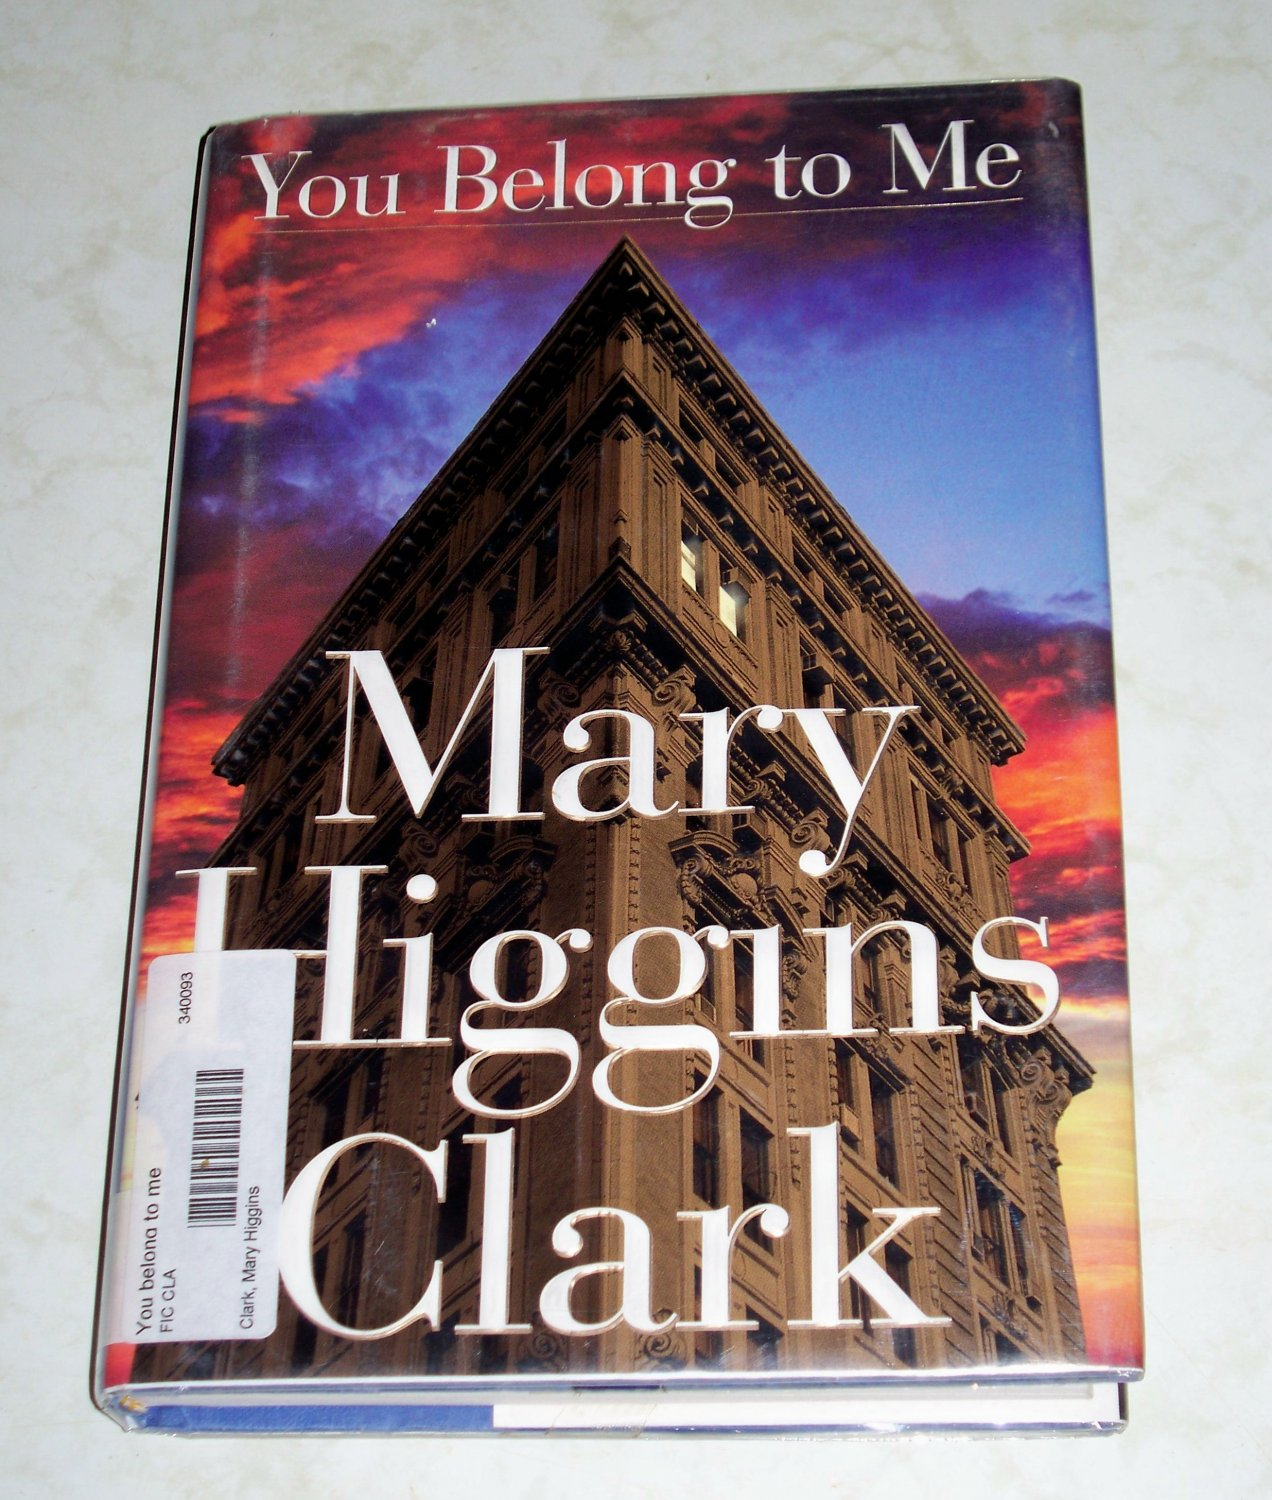 An analysis of the suspense novel you belong to me by mary higgins clark